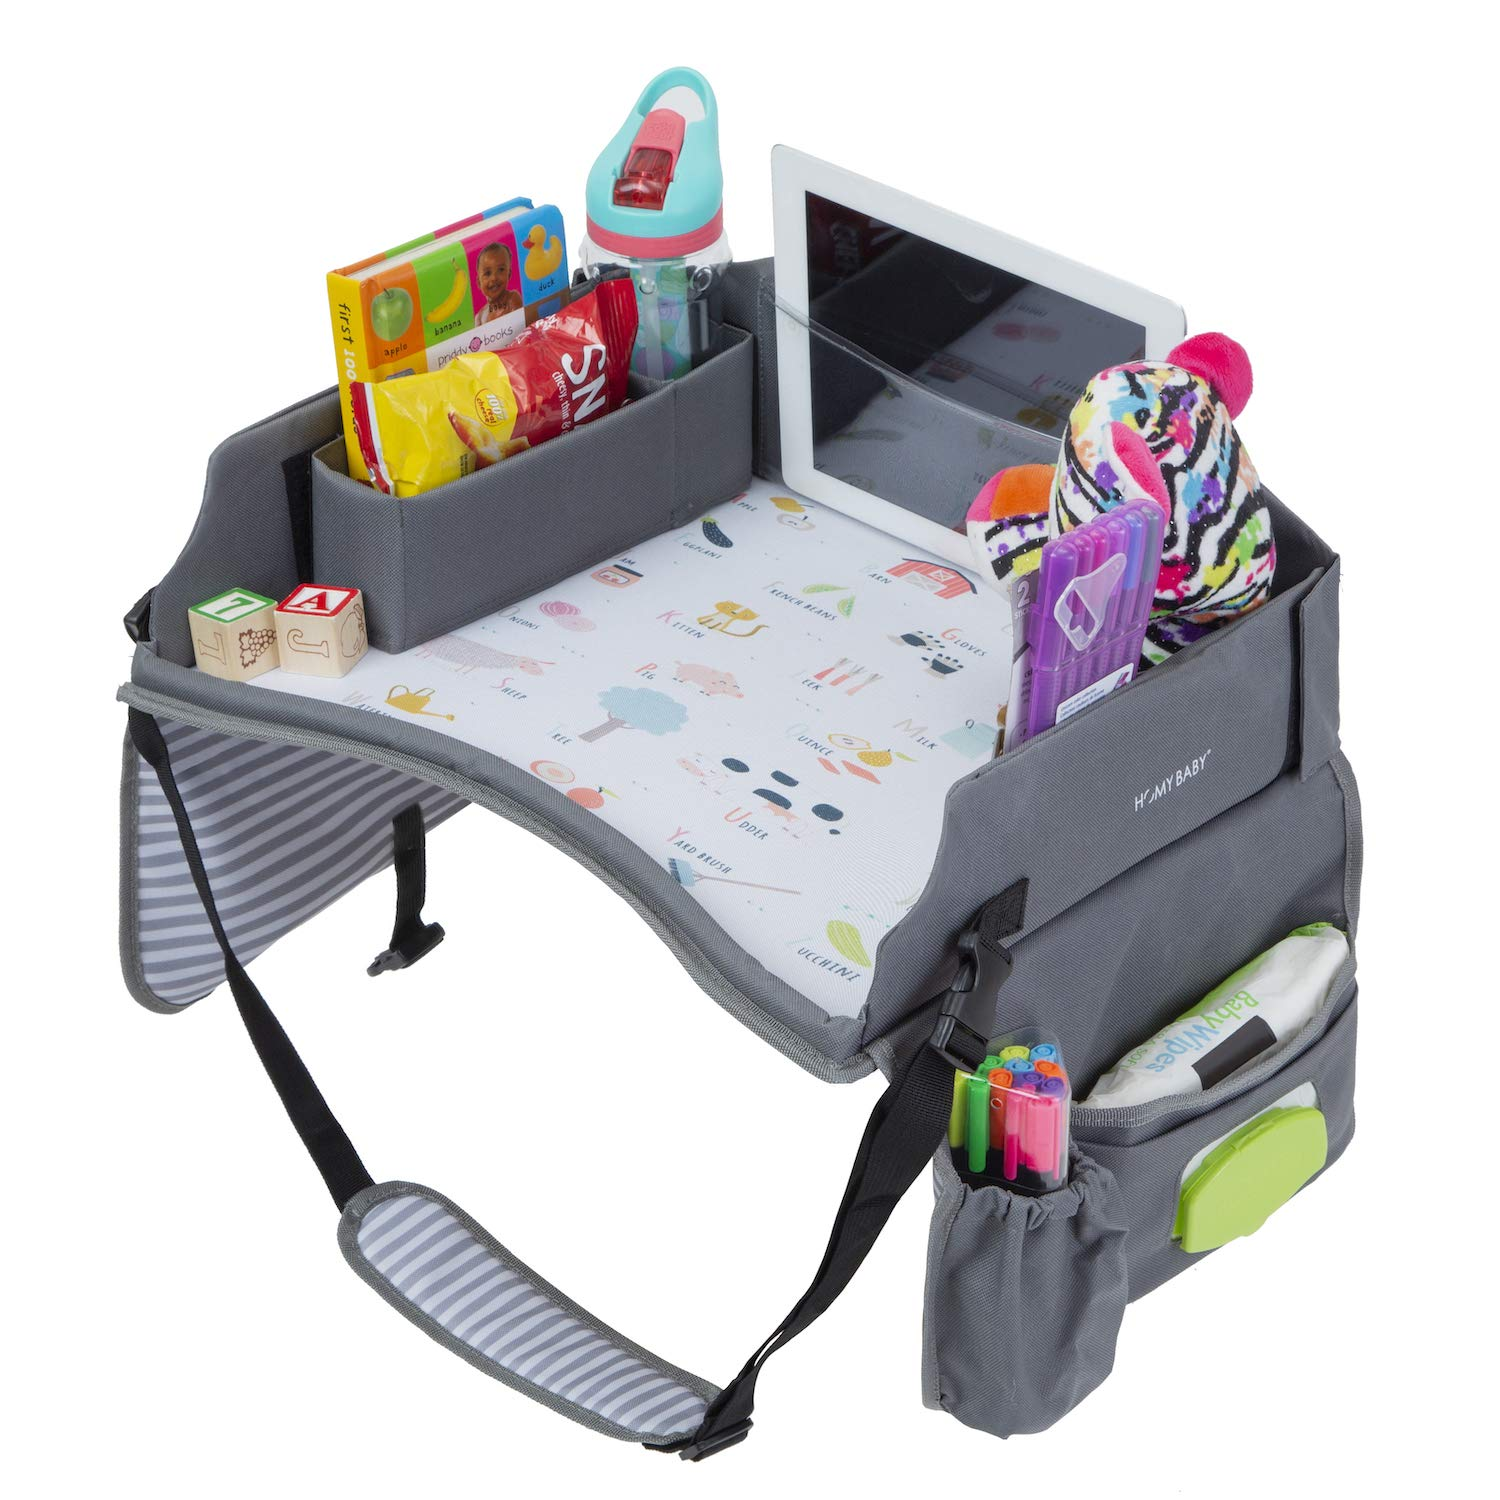 Premium Kids Travel Tray Car Seat, Waterproof Surface, Alphabet Design. Car Seat Lap Tray, Snack, Play Tray and Organizer. for Car seat Front and Rear Facing. 16.5 x 13.5 Inches (Gray/White)